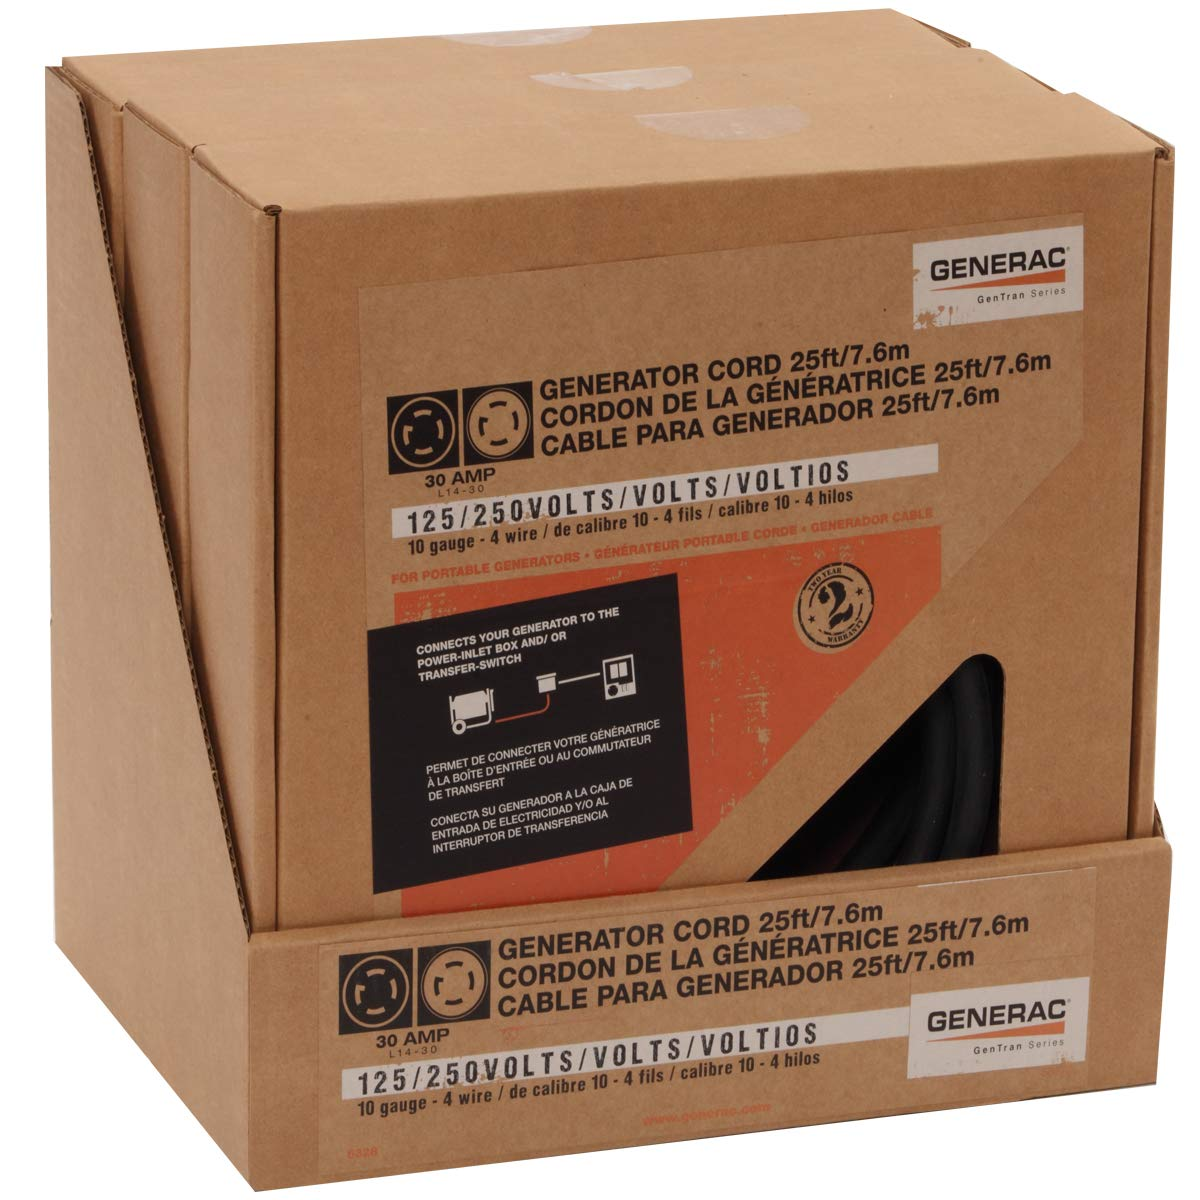 Generac 6328 25 Foot 30 Amp Generator Cord With Nema L14 Wiring Power Inlet Box Ends For Maximum 7500 Watt Generators Garden Outdoor